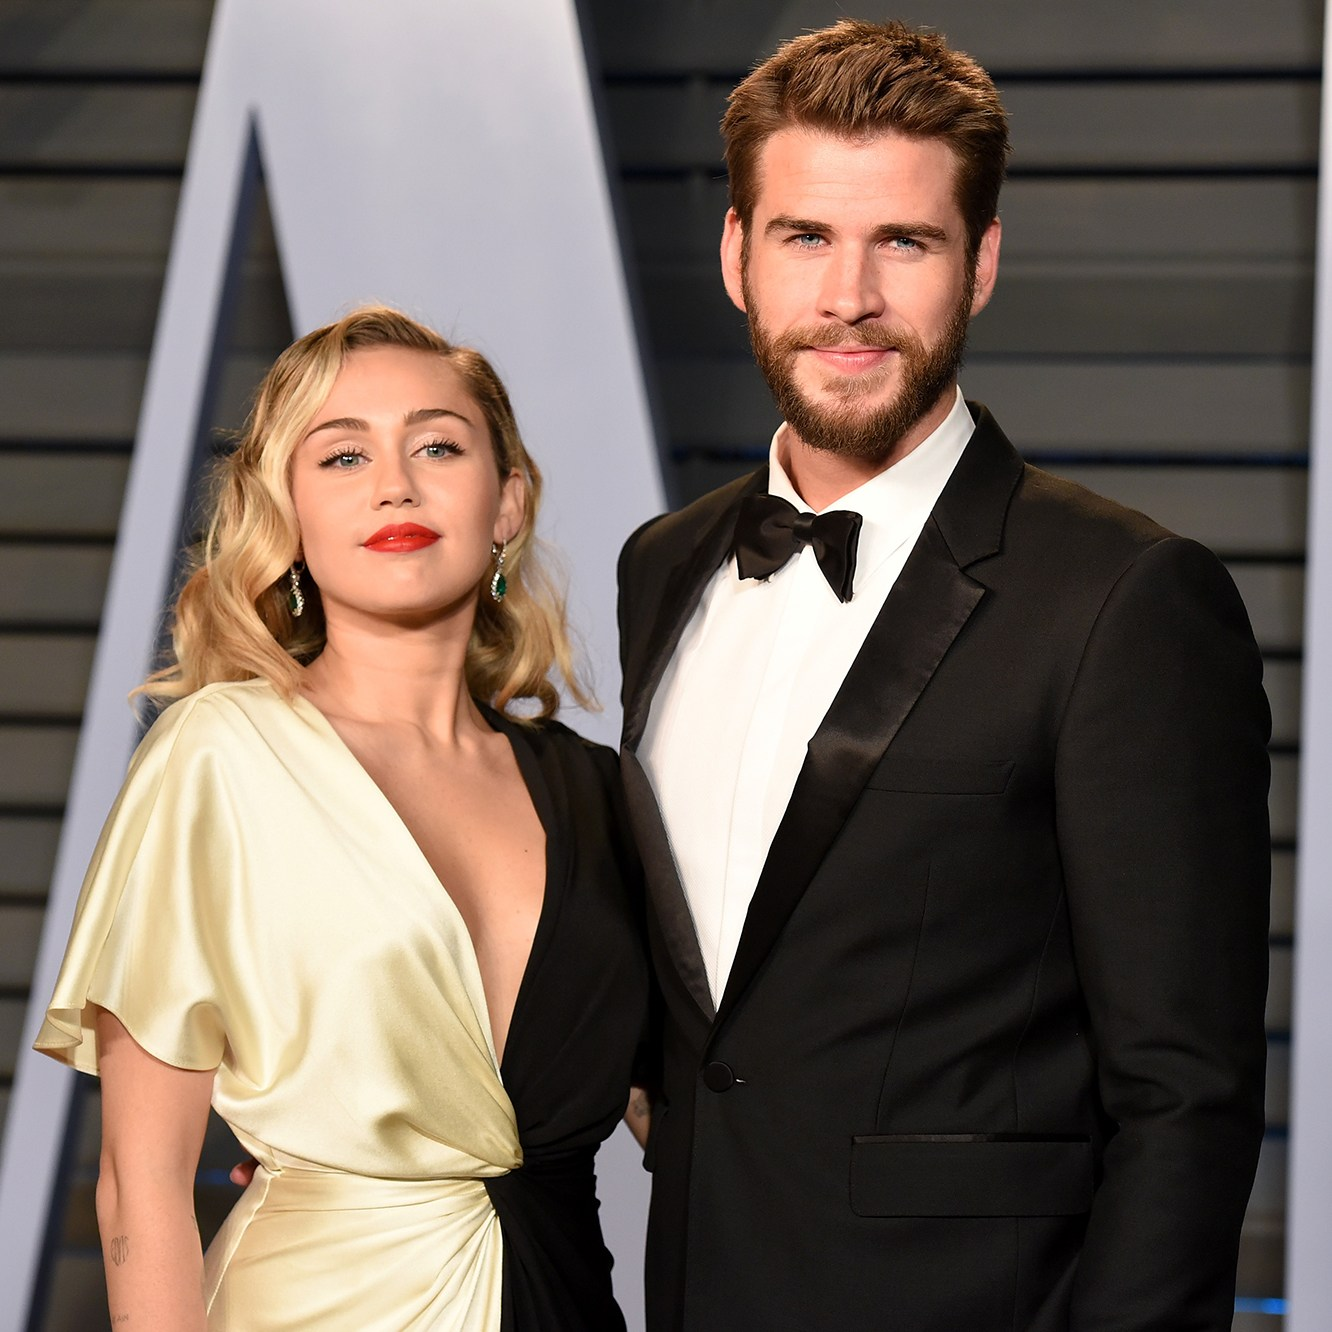 Liam Hemsworth Reveals Why He and Wife Miley Cyrus Decided to Get Married After Nearly 10 Years Together